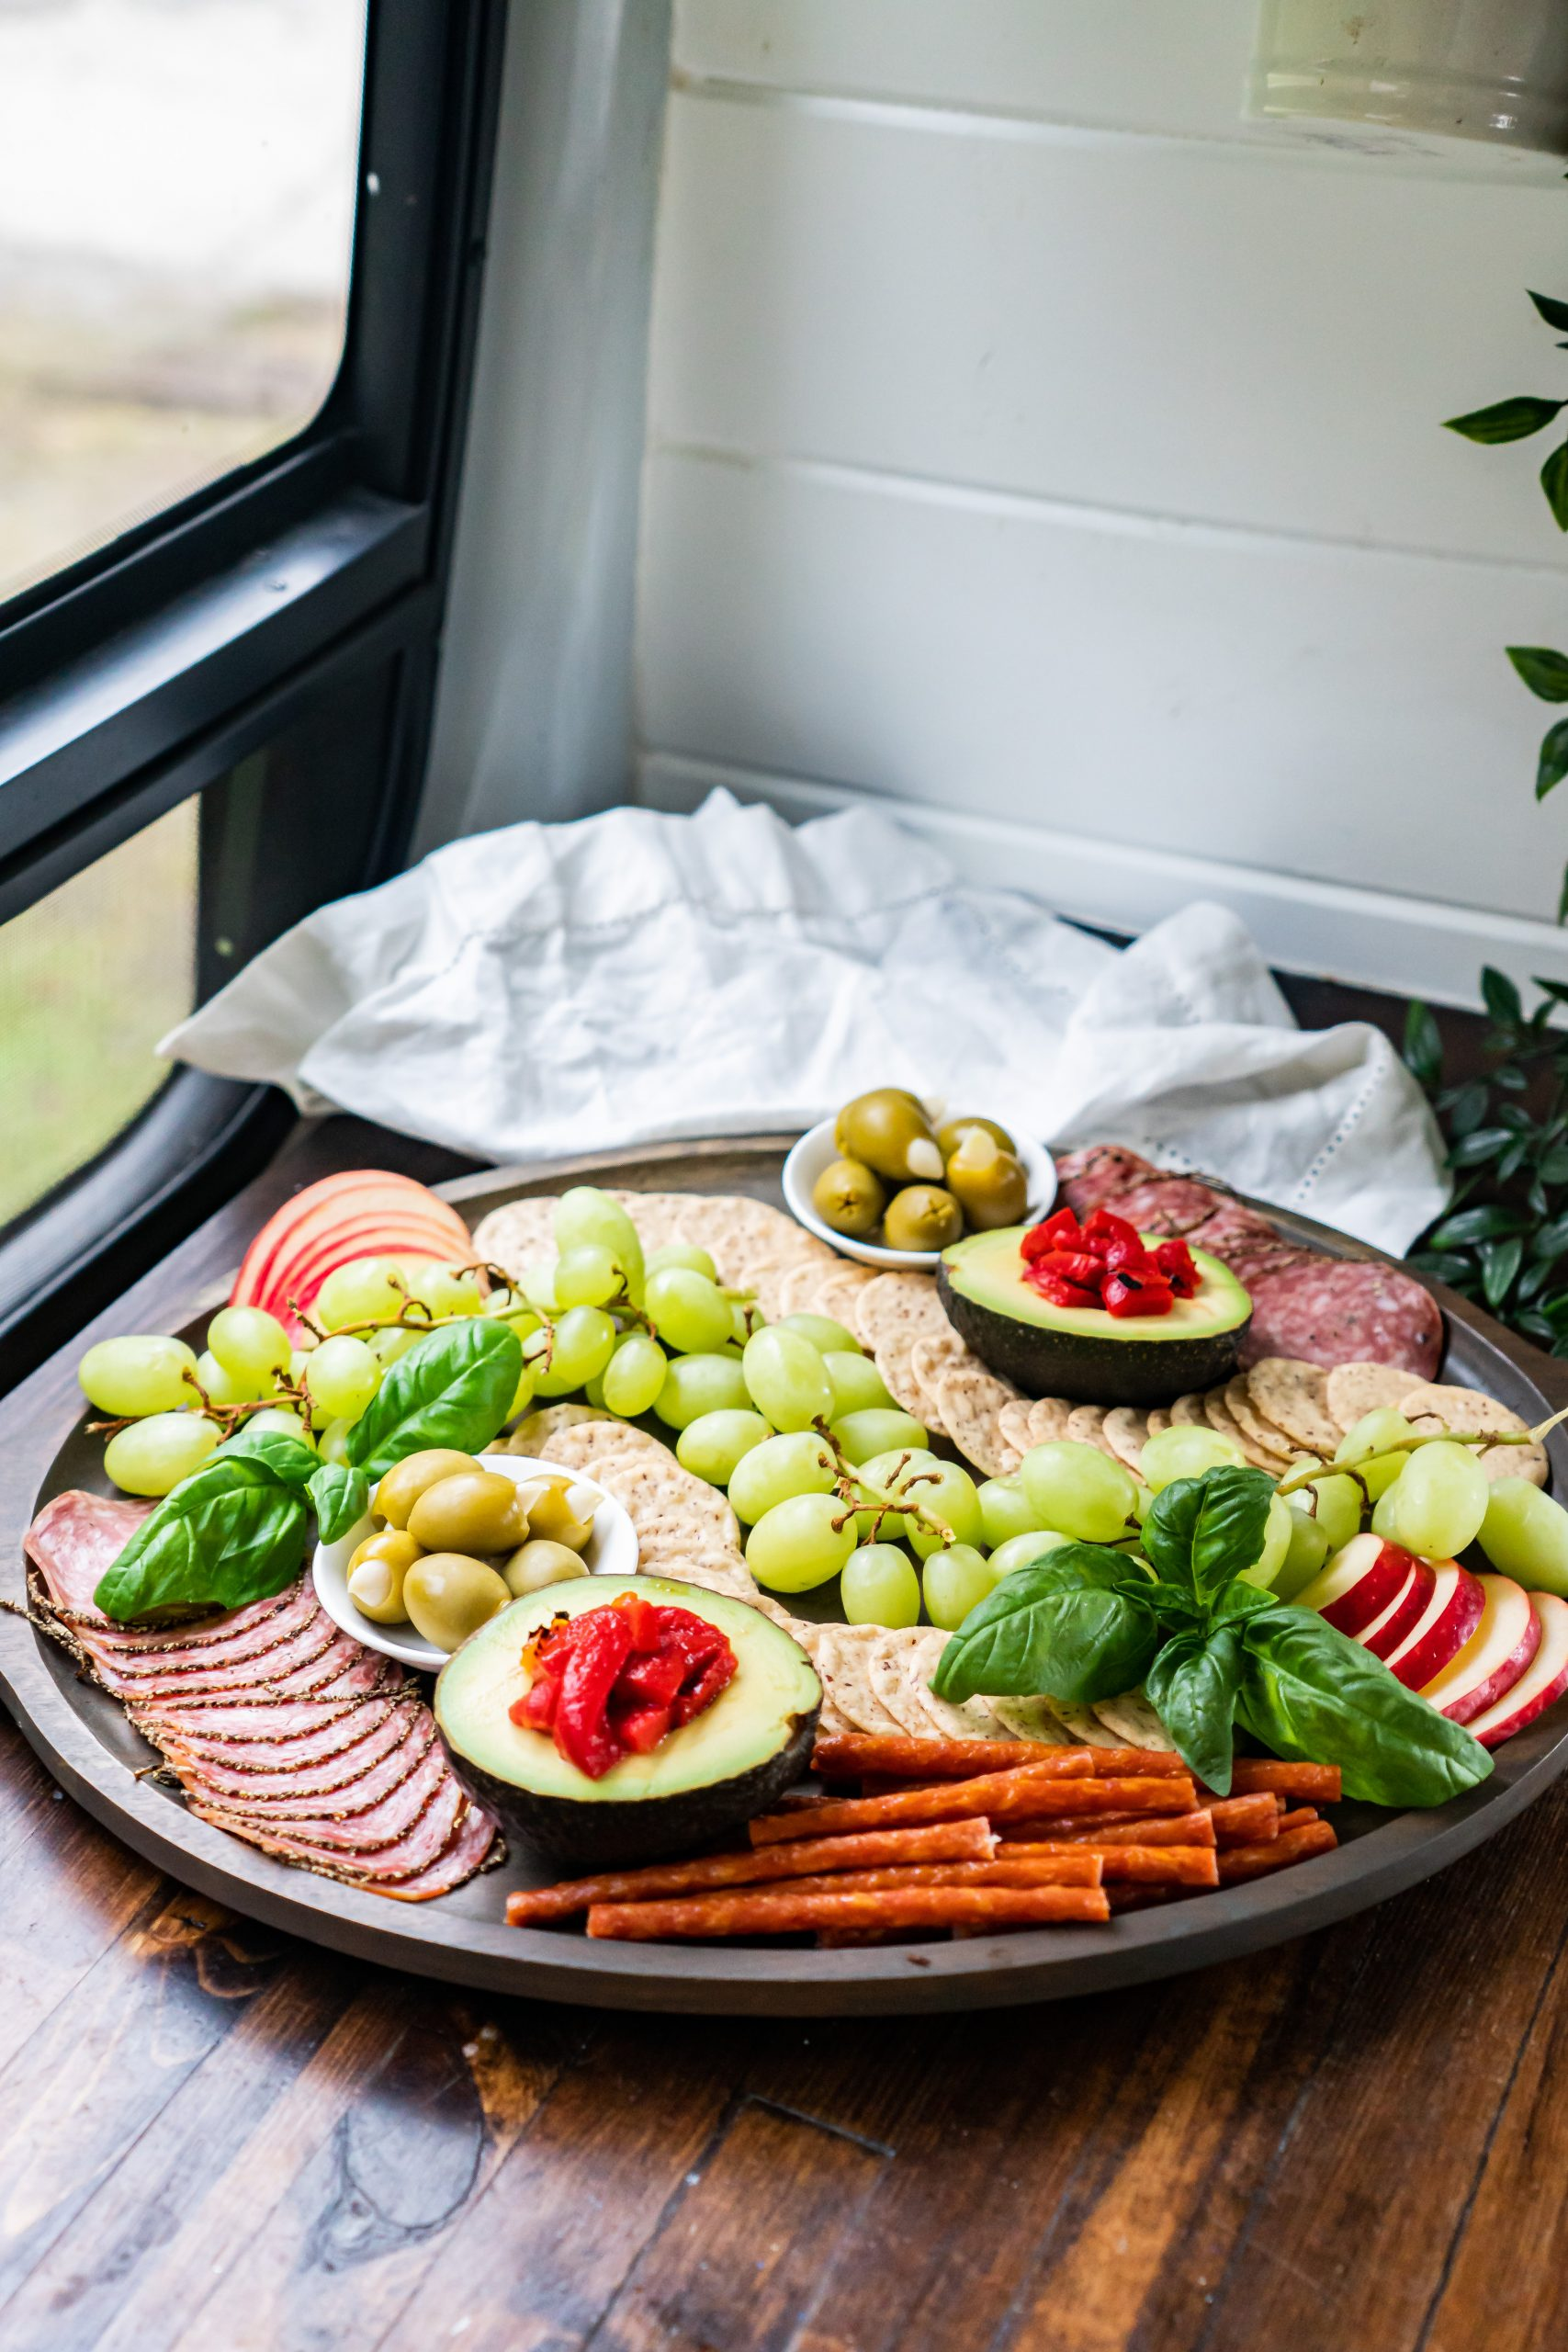 A gluten and dairy free charcuterie board resting on a counter in my camper van kitchen.